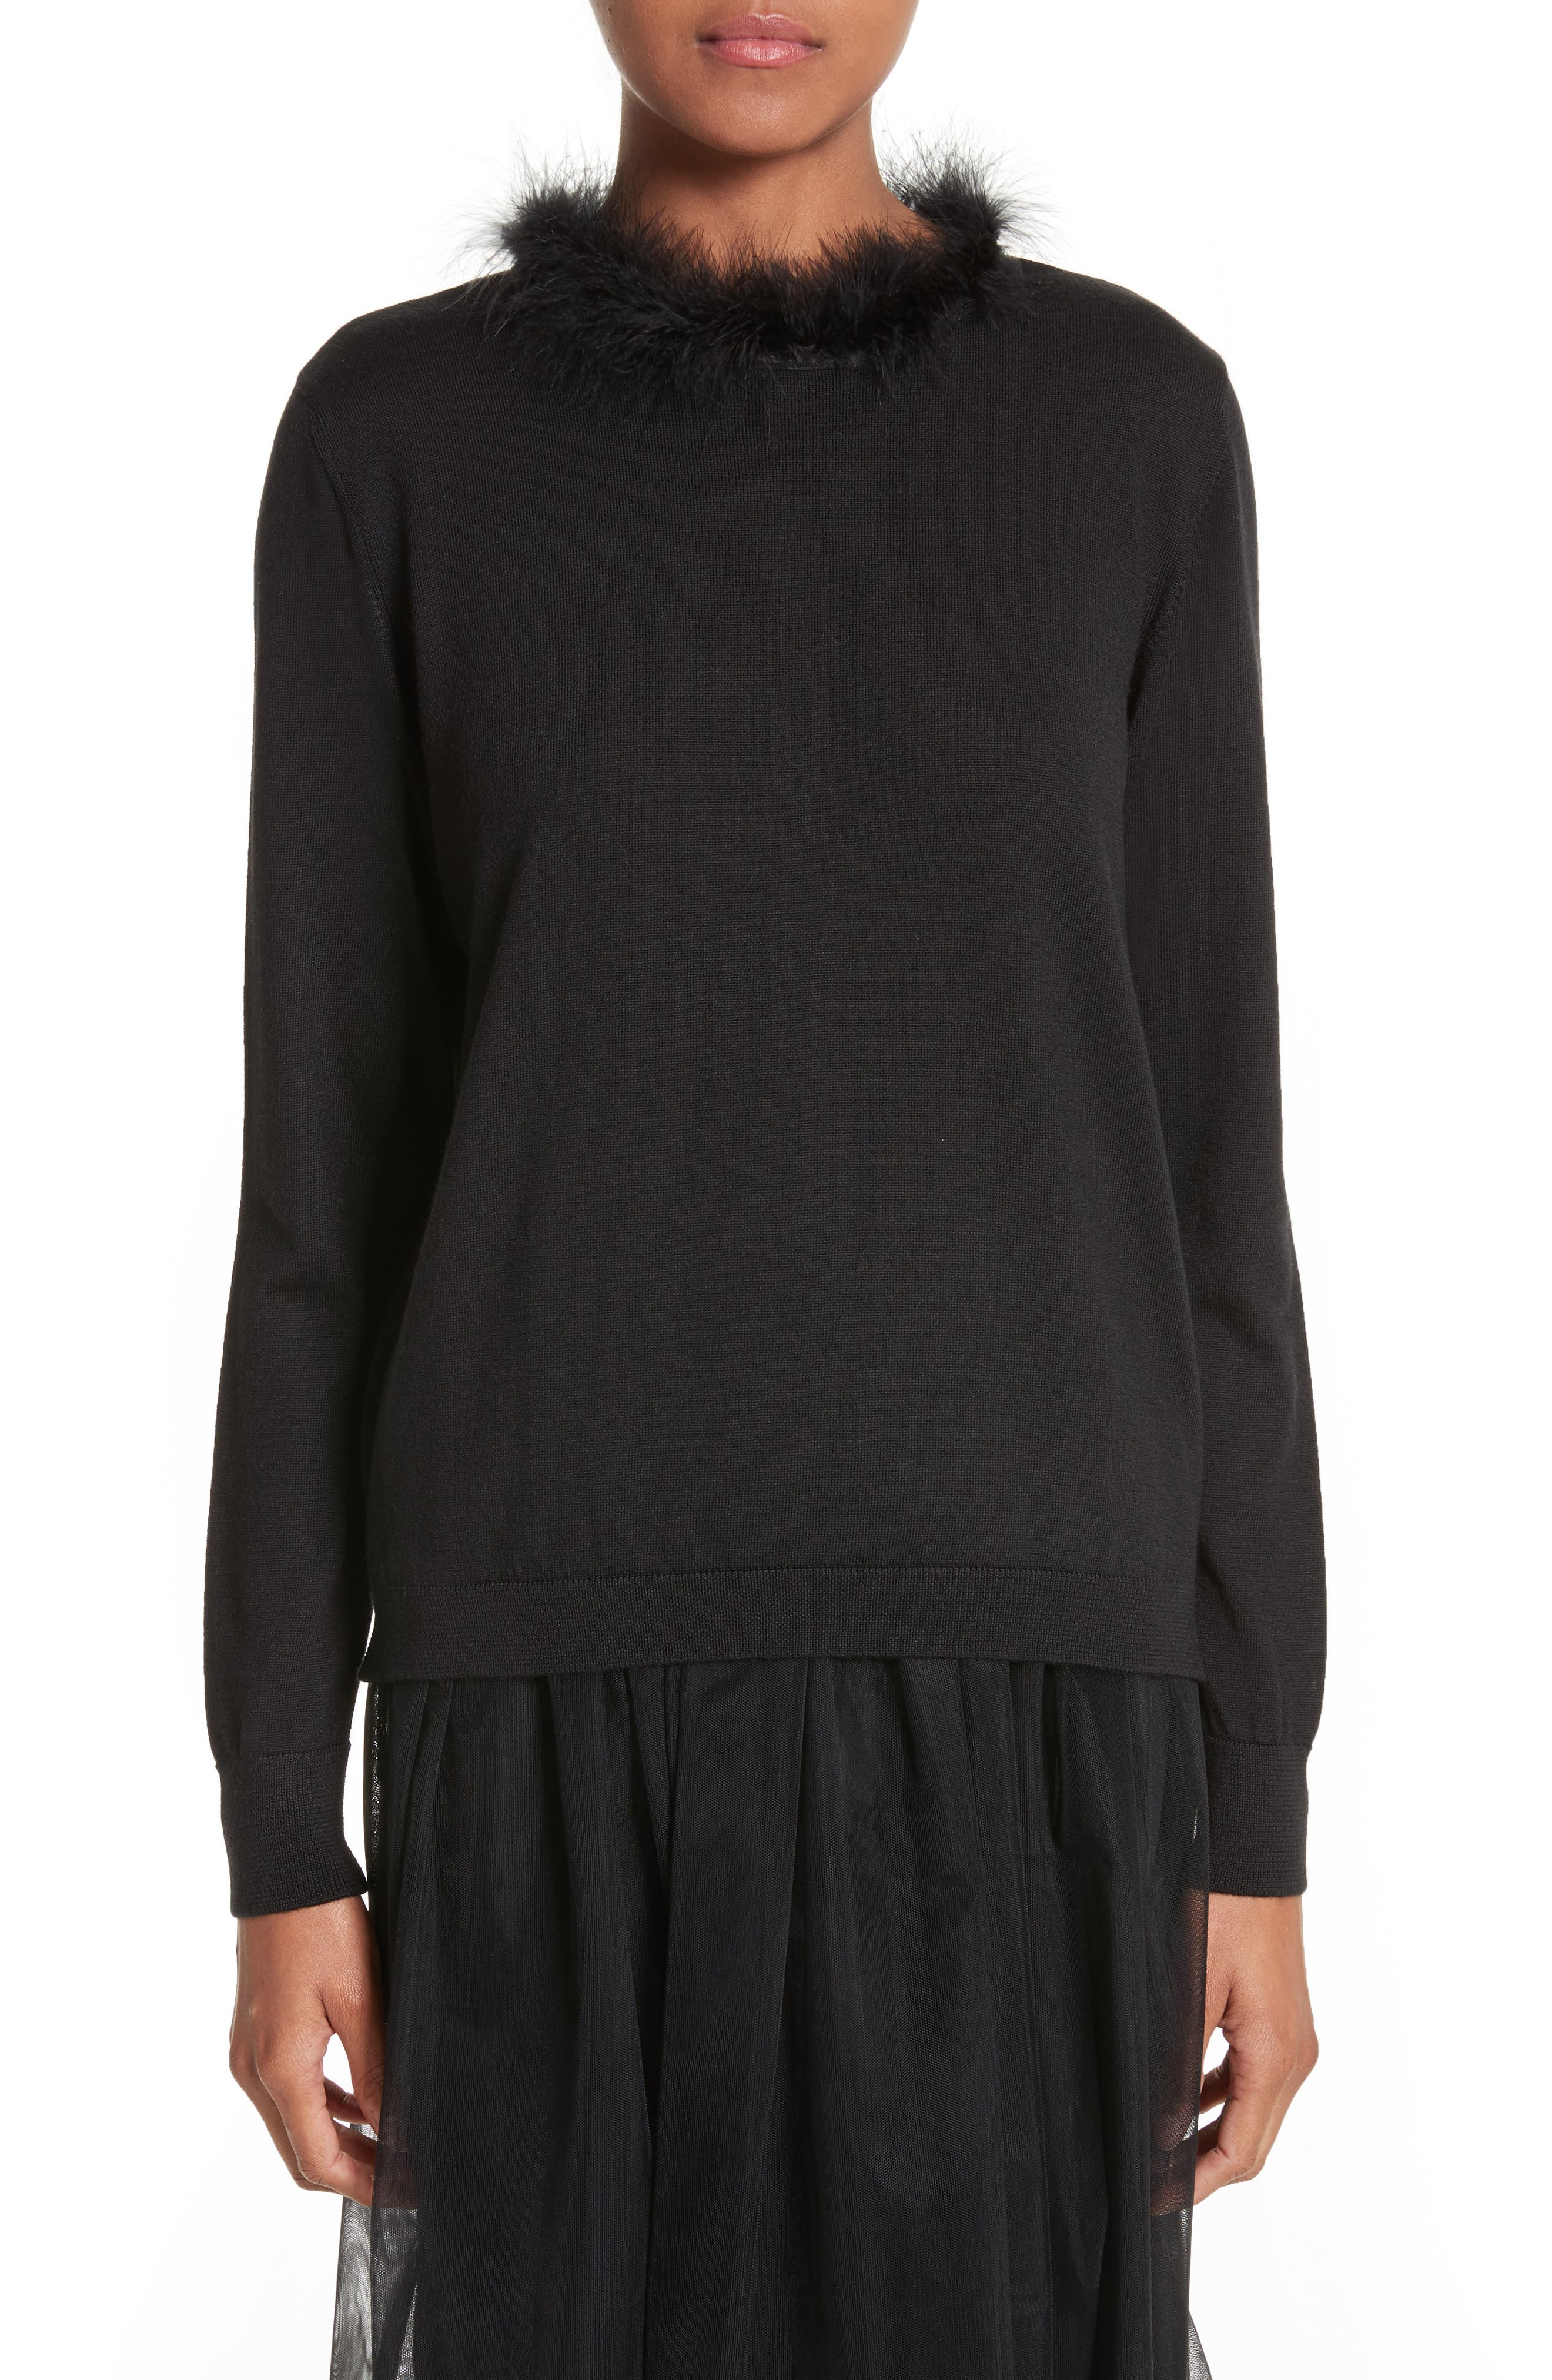 Alternate Image 1 Selected - Simone Rocha Teddy Open Back Sweater with Feather Trim